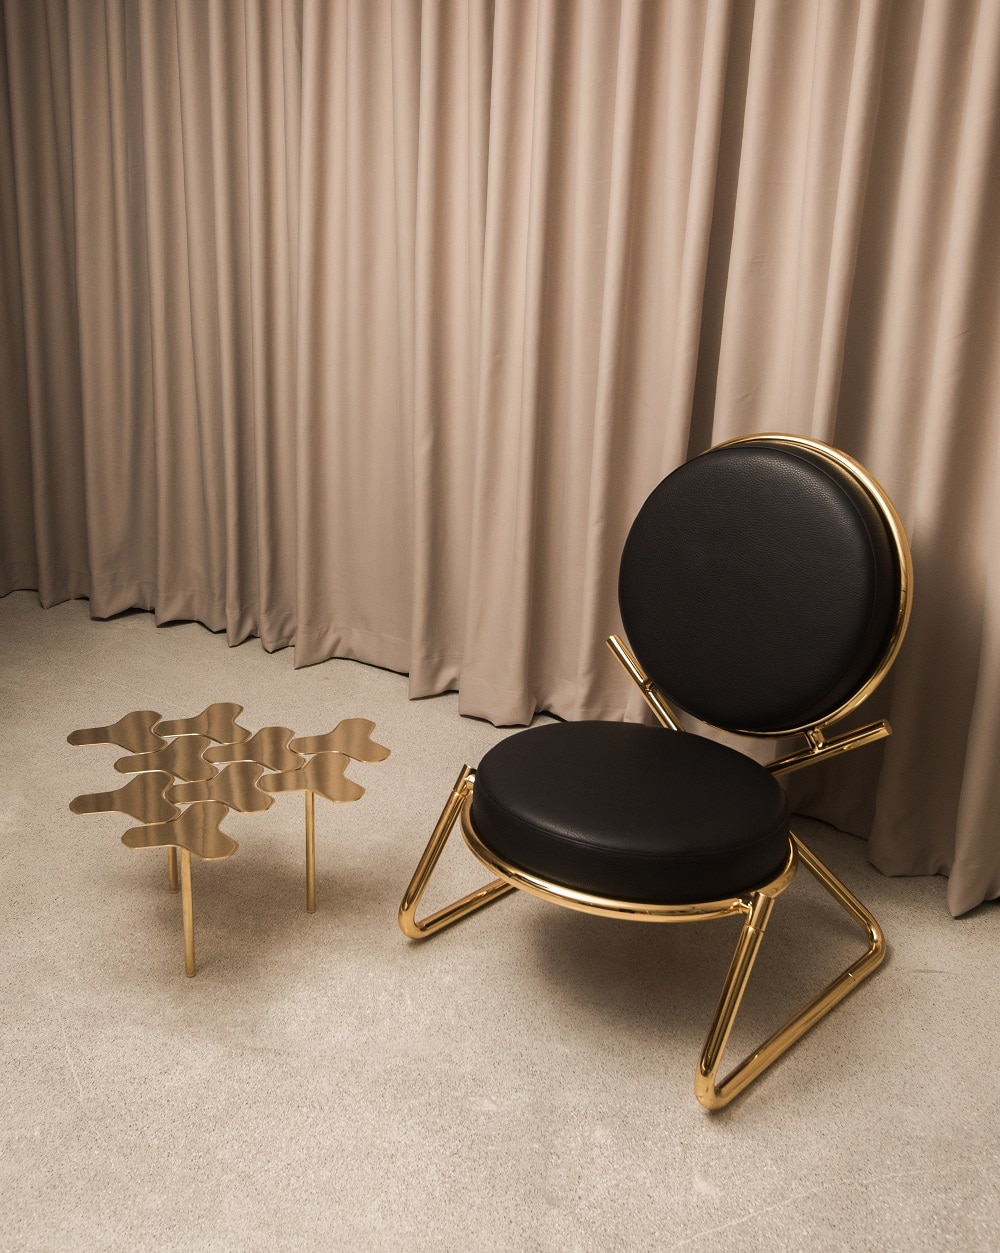 From Moroso, The Double Zero chair by David Adjaye and the Nanook low table by Philippe Bestenheider